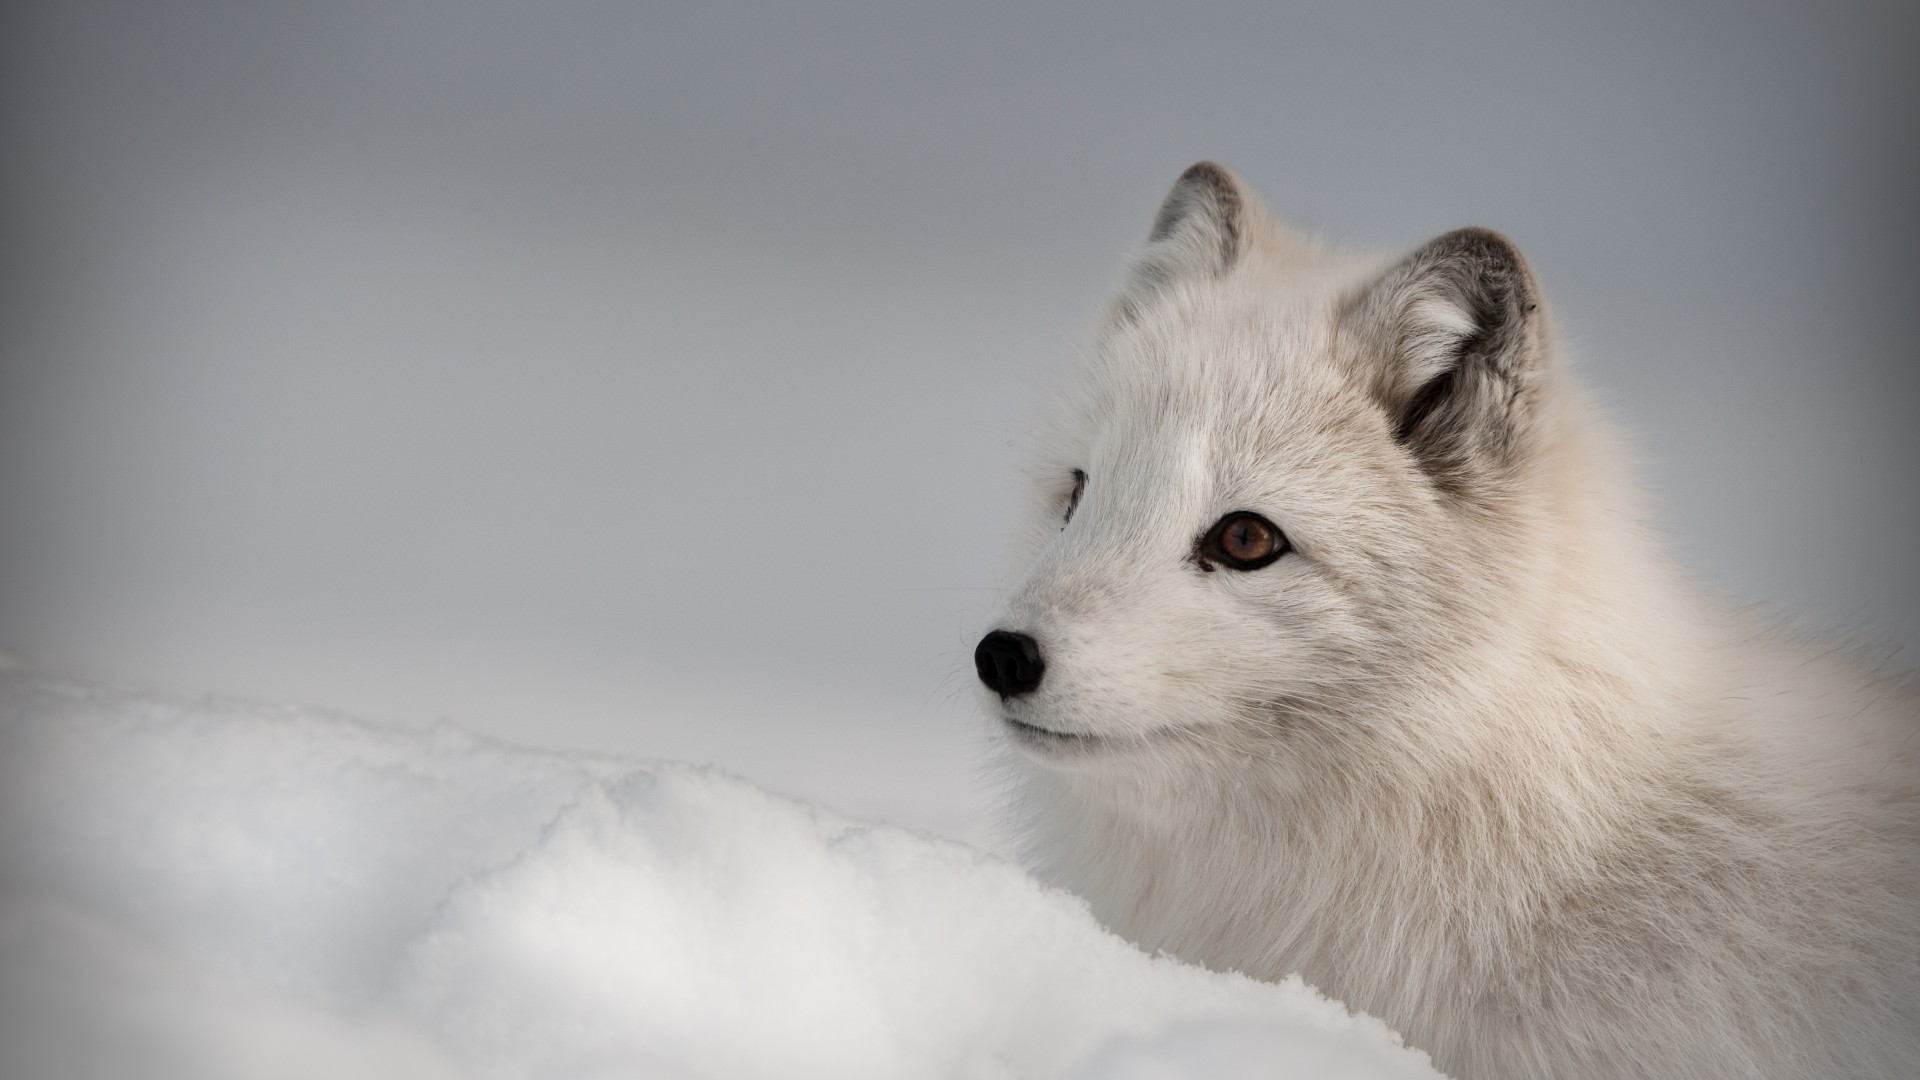 Arctic fox, Northern Hemisphere, animal (horizontal)